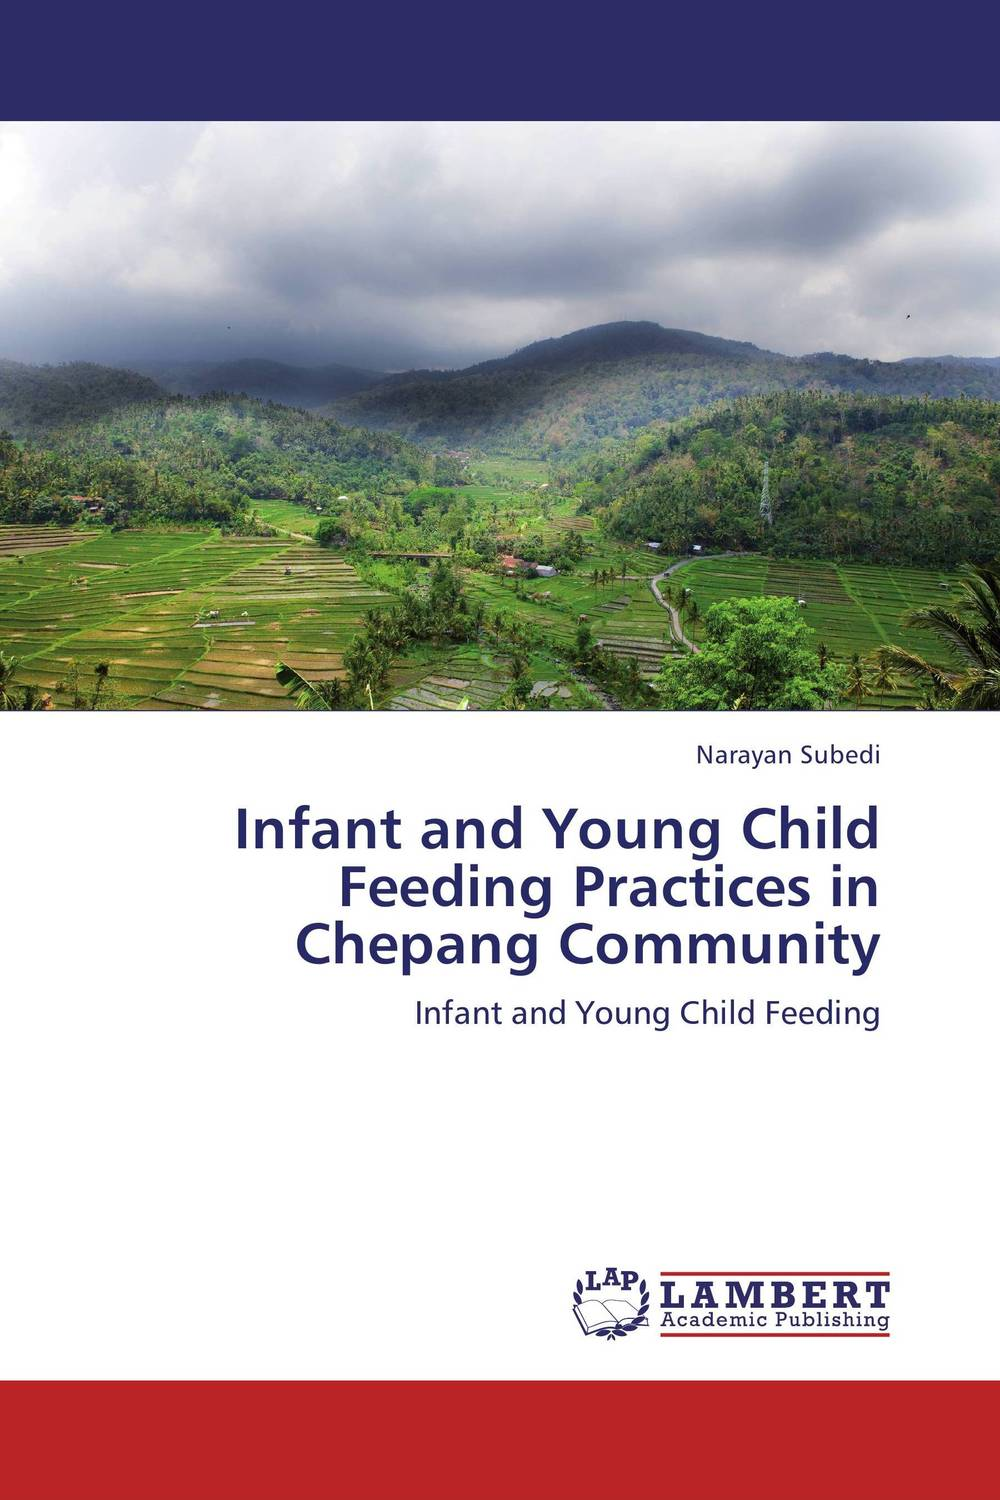 Infant and Young Child Feeding Practices in Chepang Community found in brooklyn